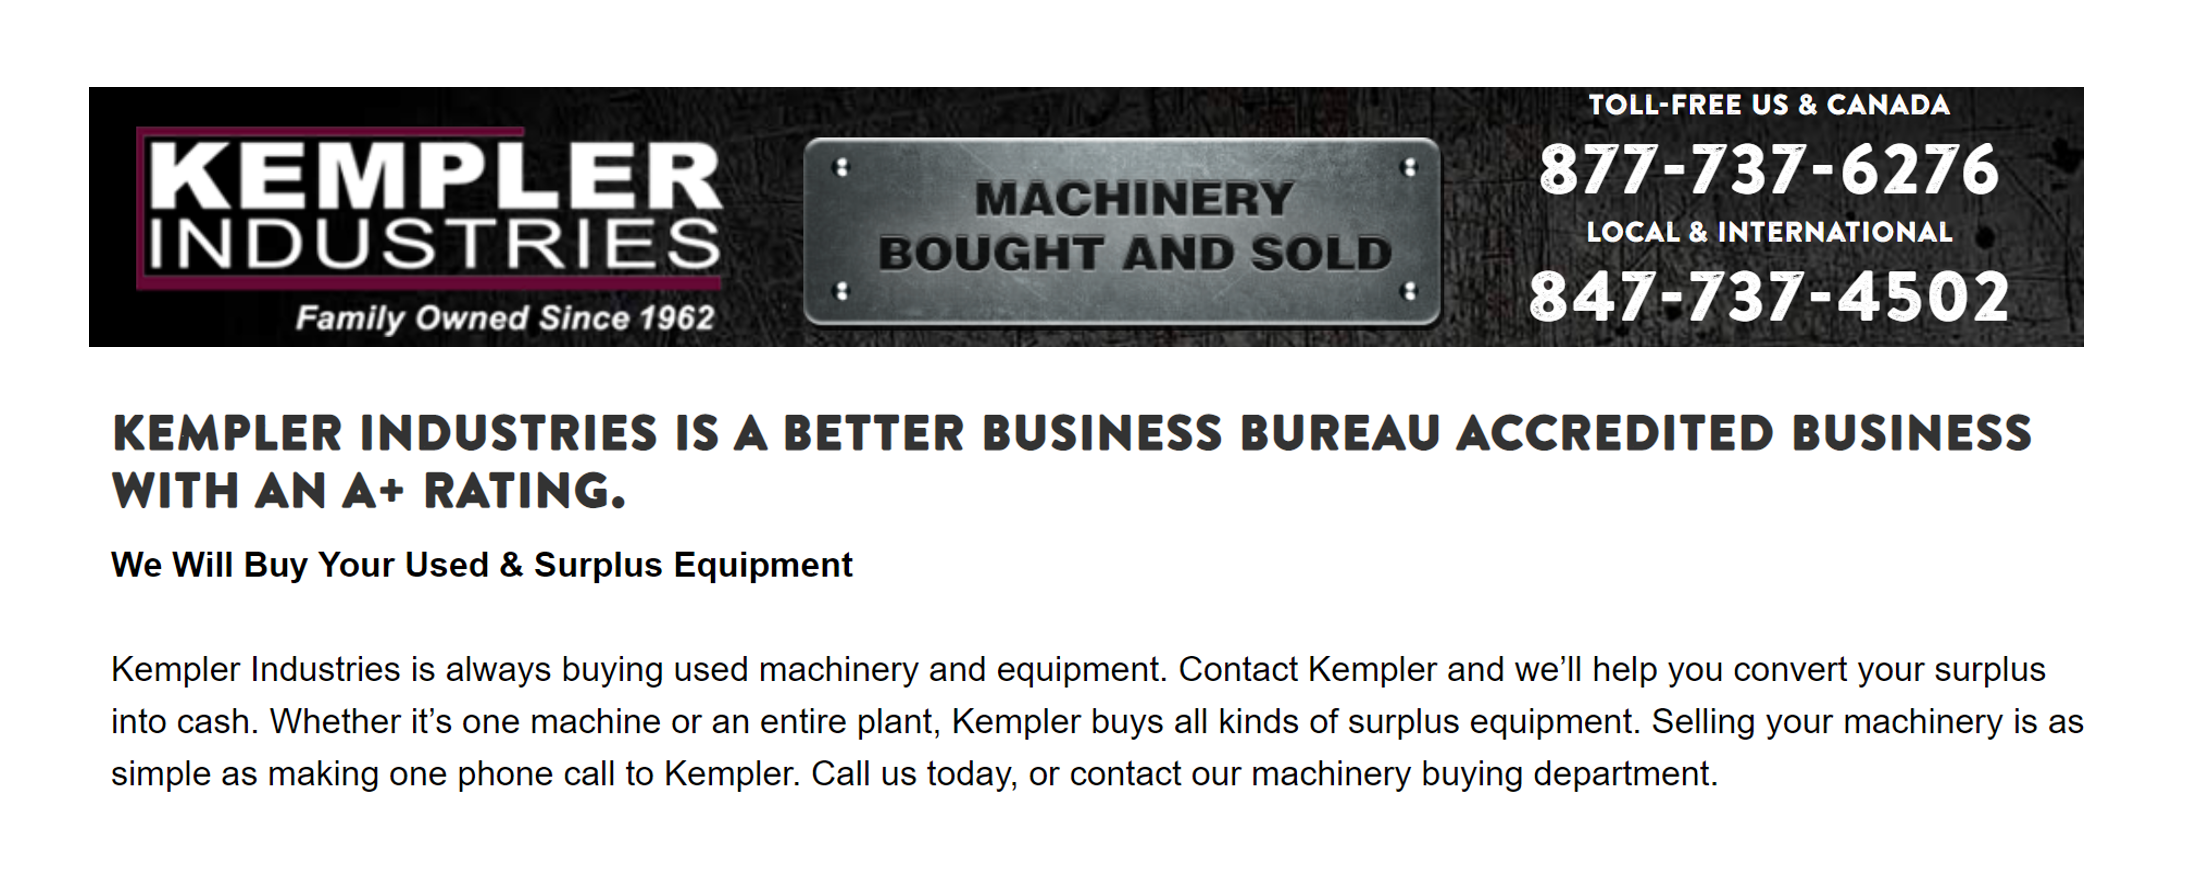 Kempler Industries - Sell Used Industrial Equipment